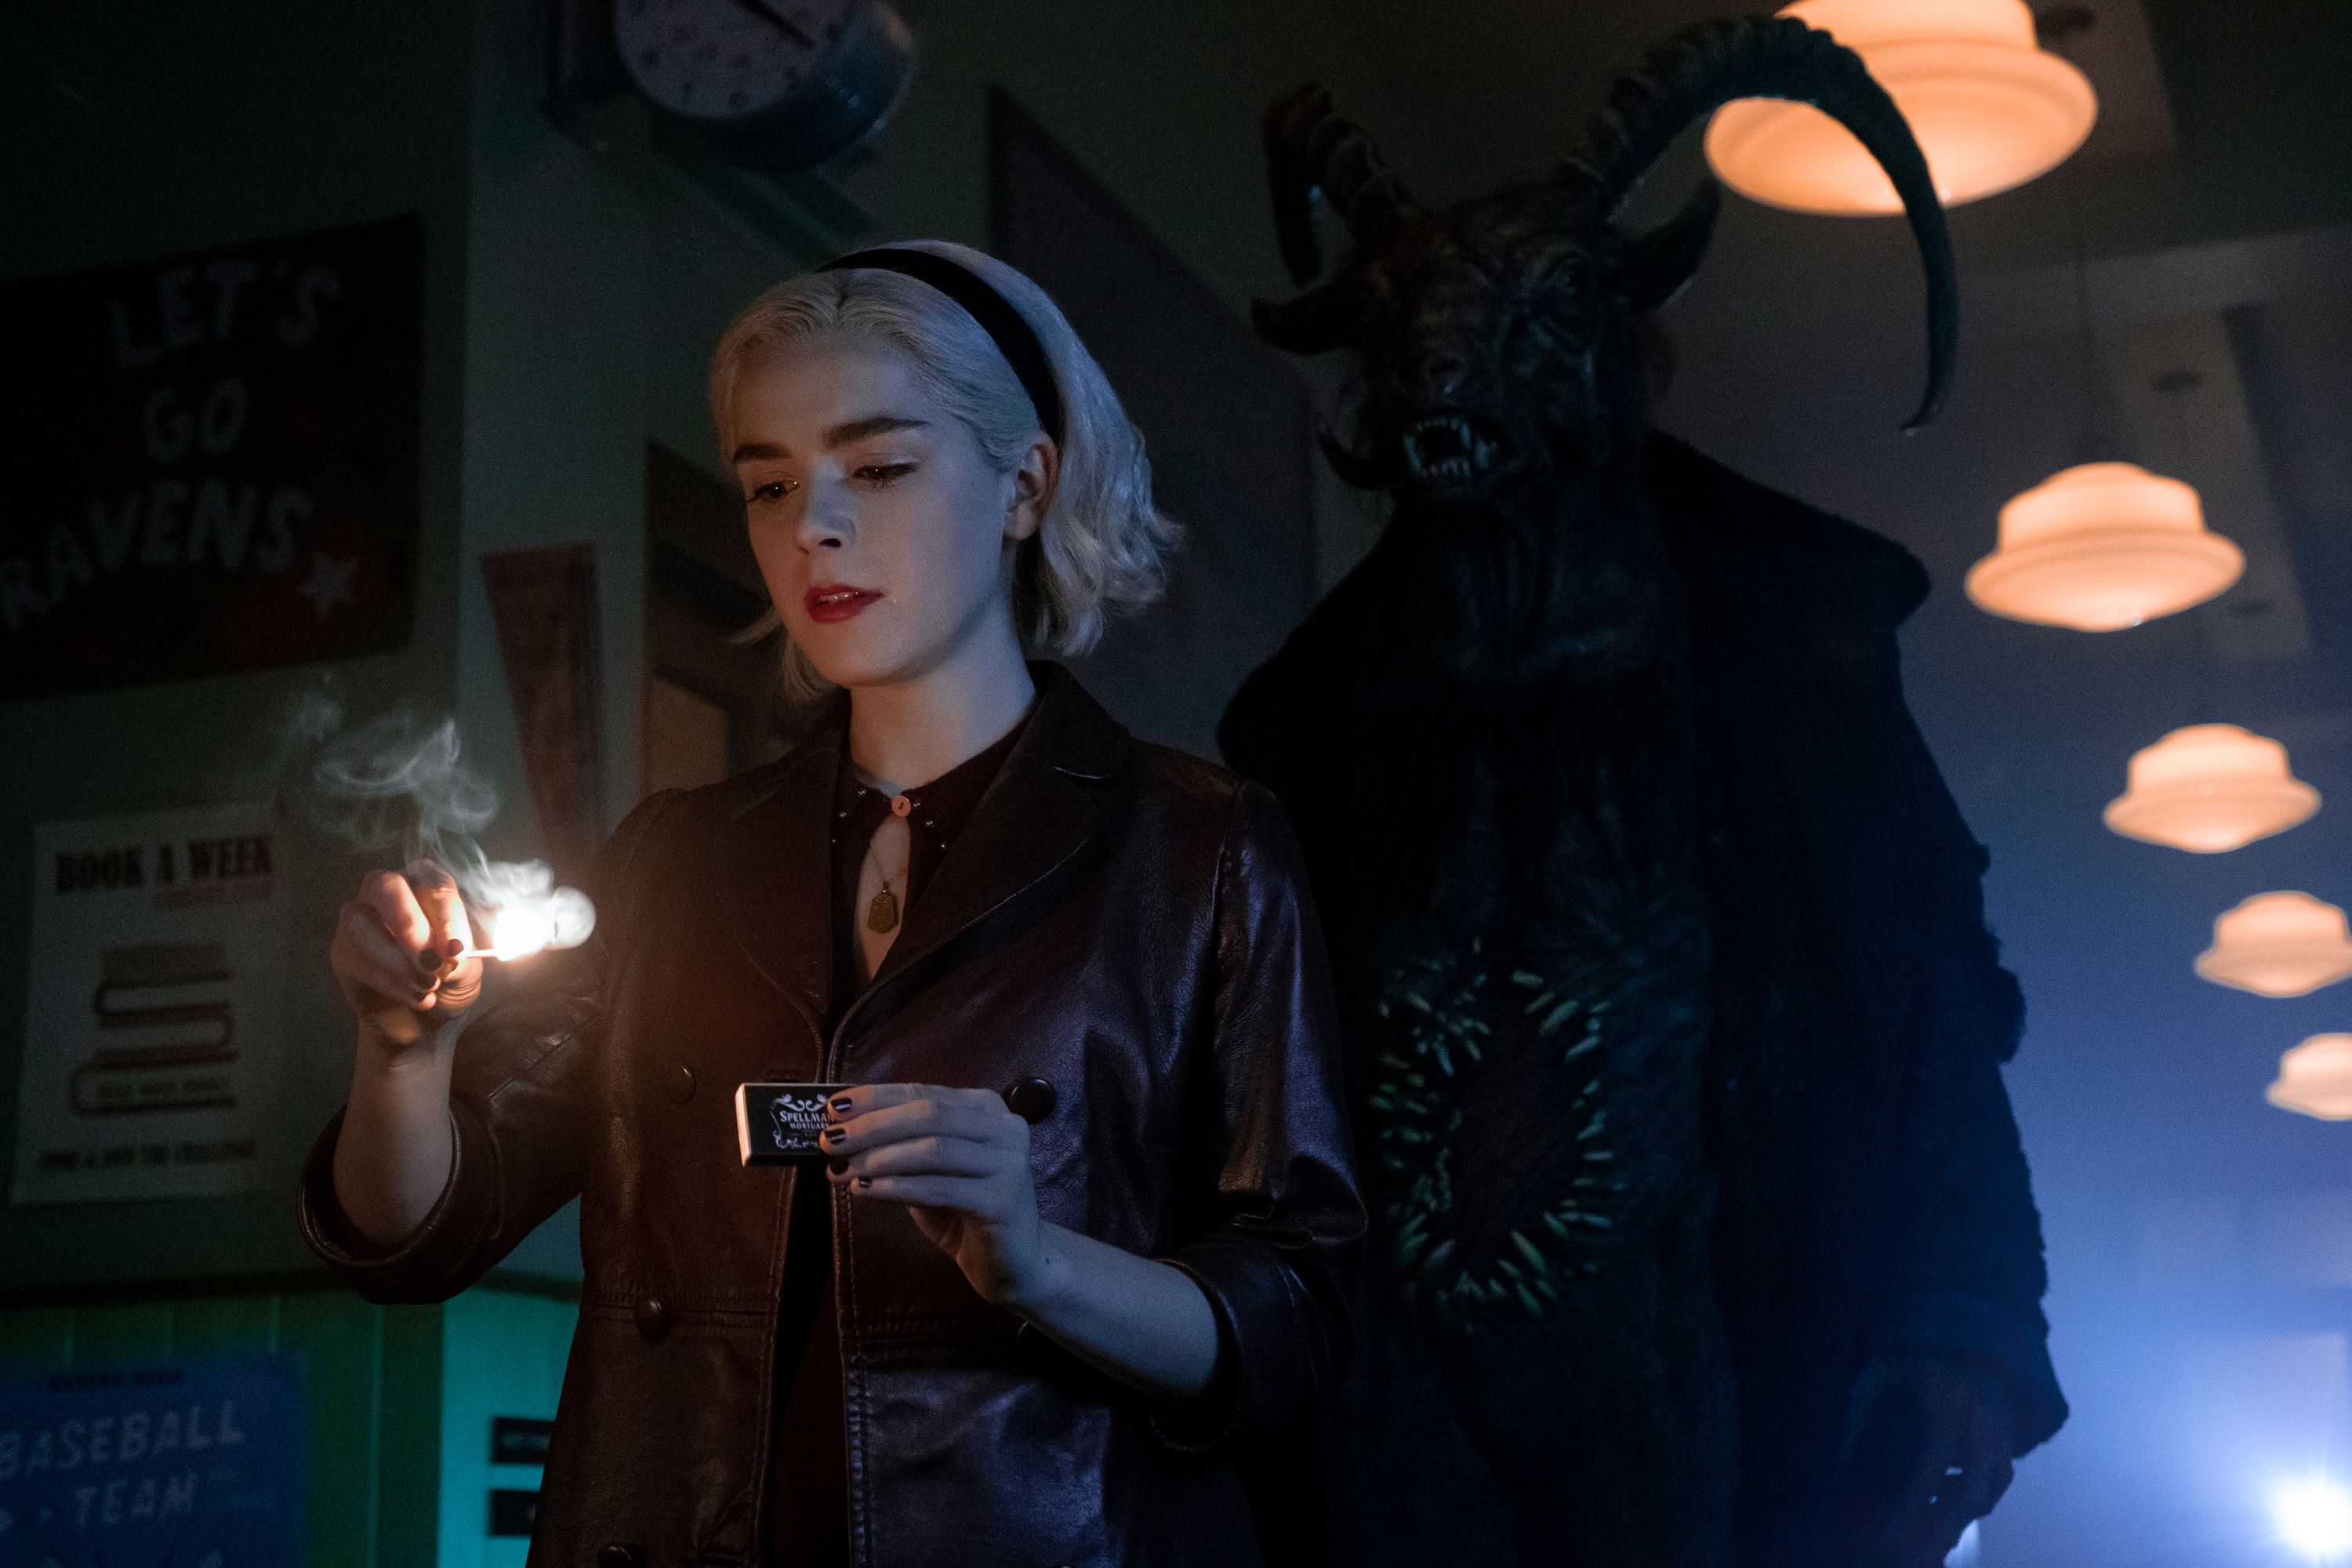 The Chilling Adventures of Sabrina' Season 2 Netflix News